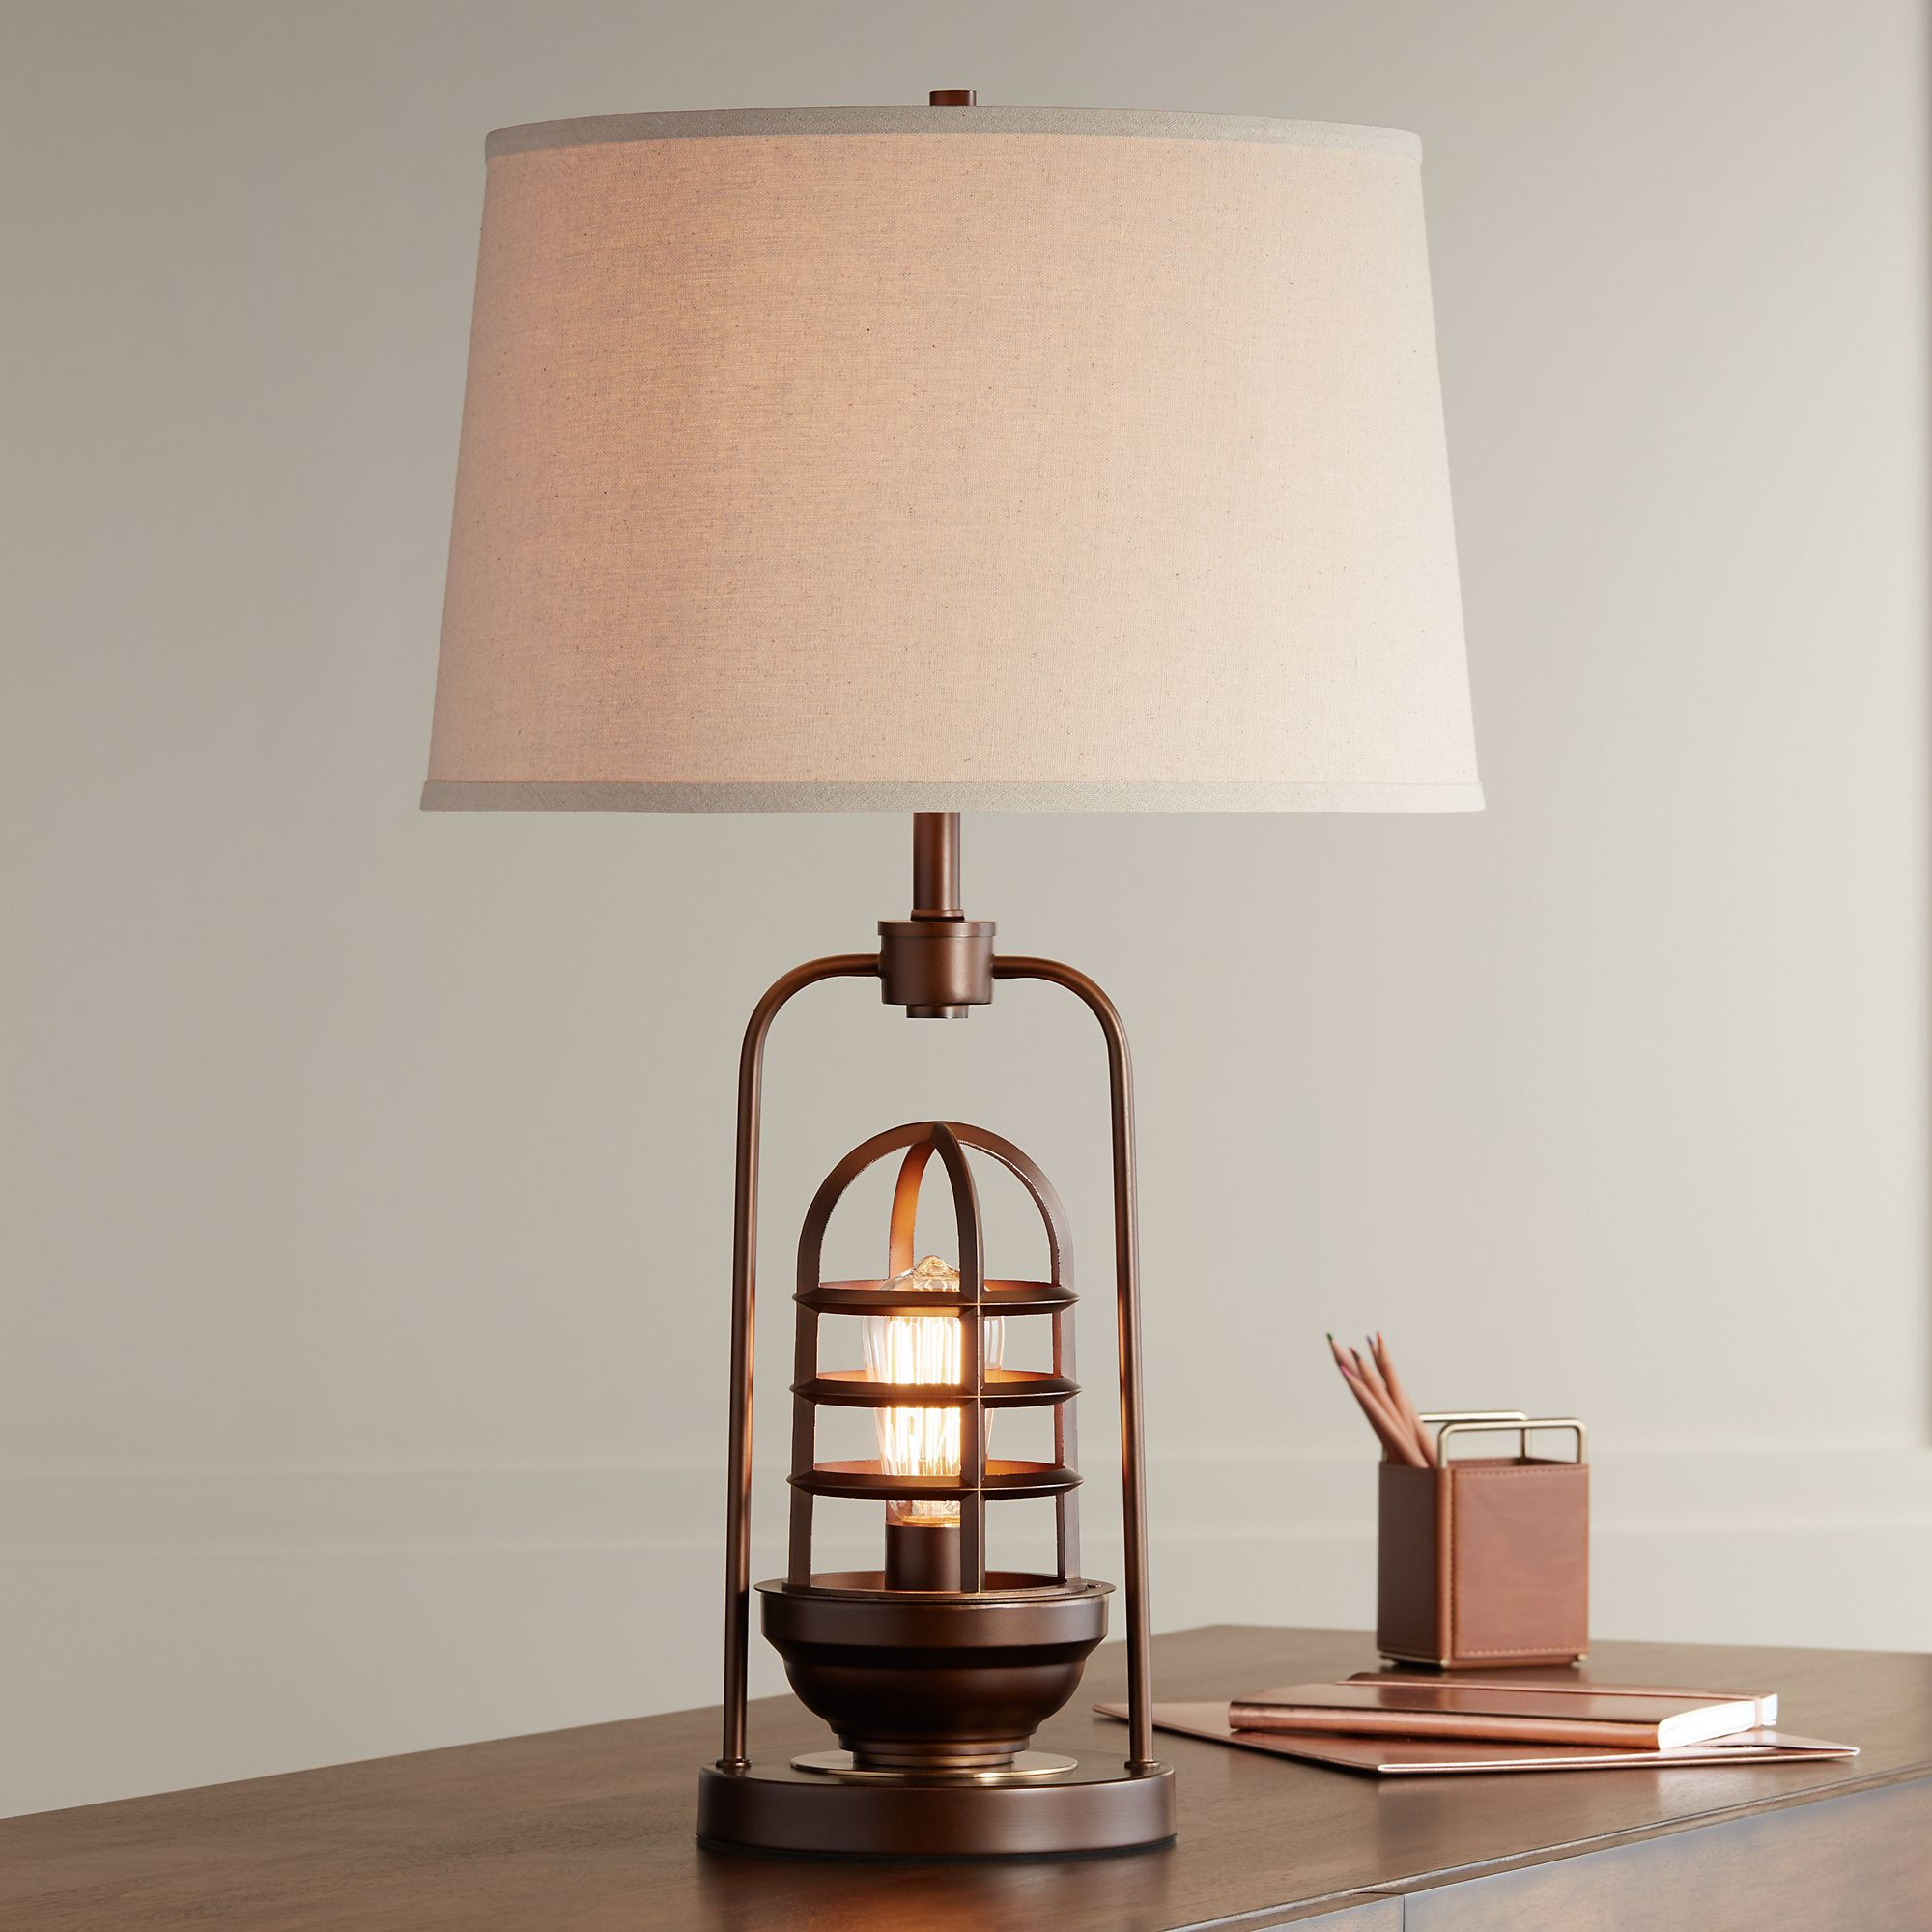 Franklin Iron Works Hobie Bronze Nightlight Cage Table Lamp by Franklin Iron Works